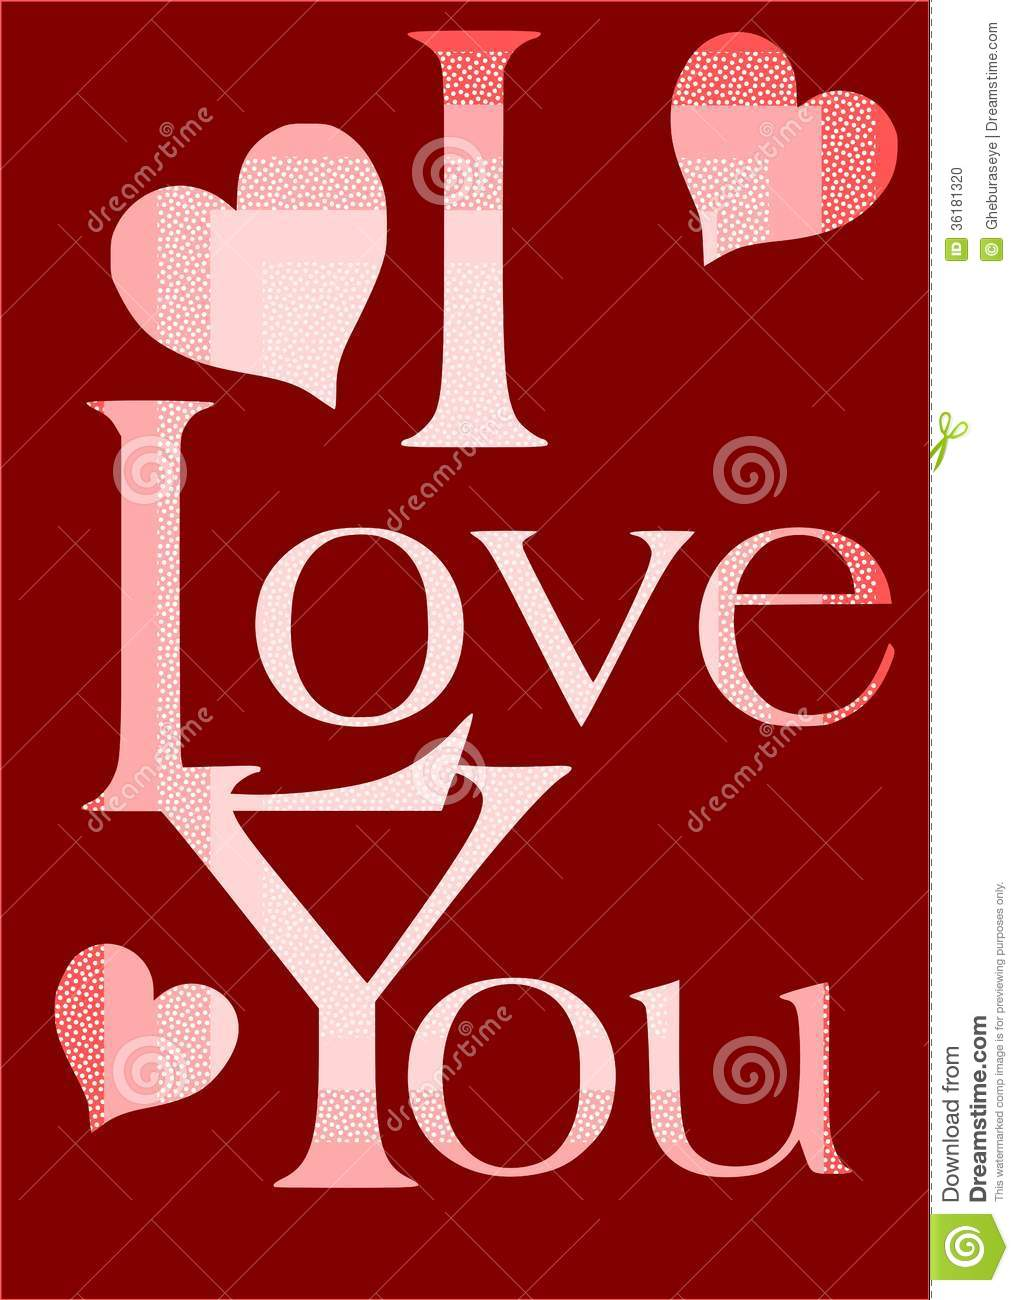 I Love You Greeting Card In Red Stock Photo - Image: 36181320